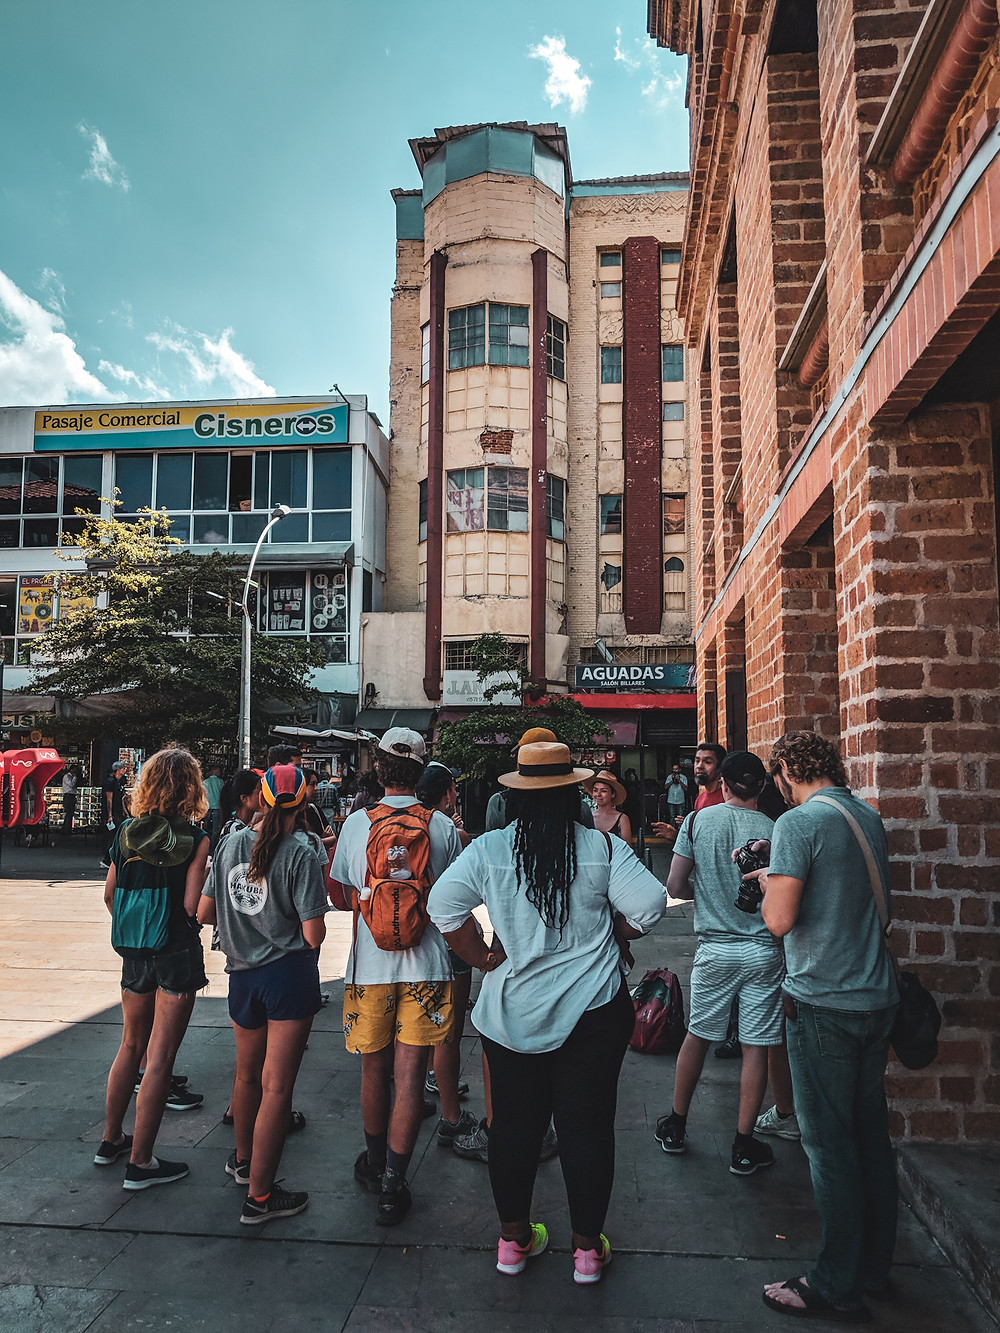 Real City free walking tour in Medellín, Colombia.